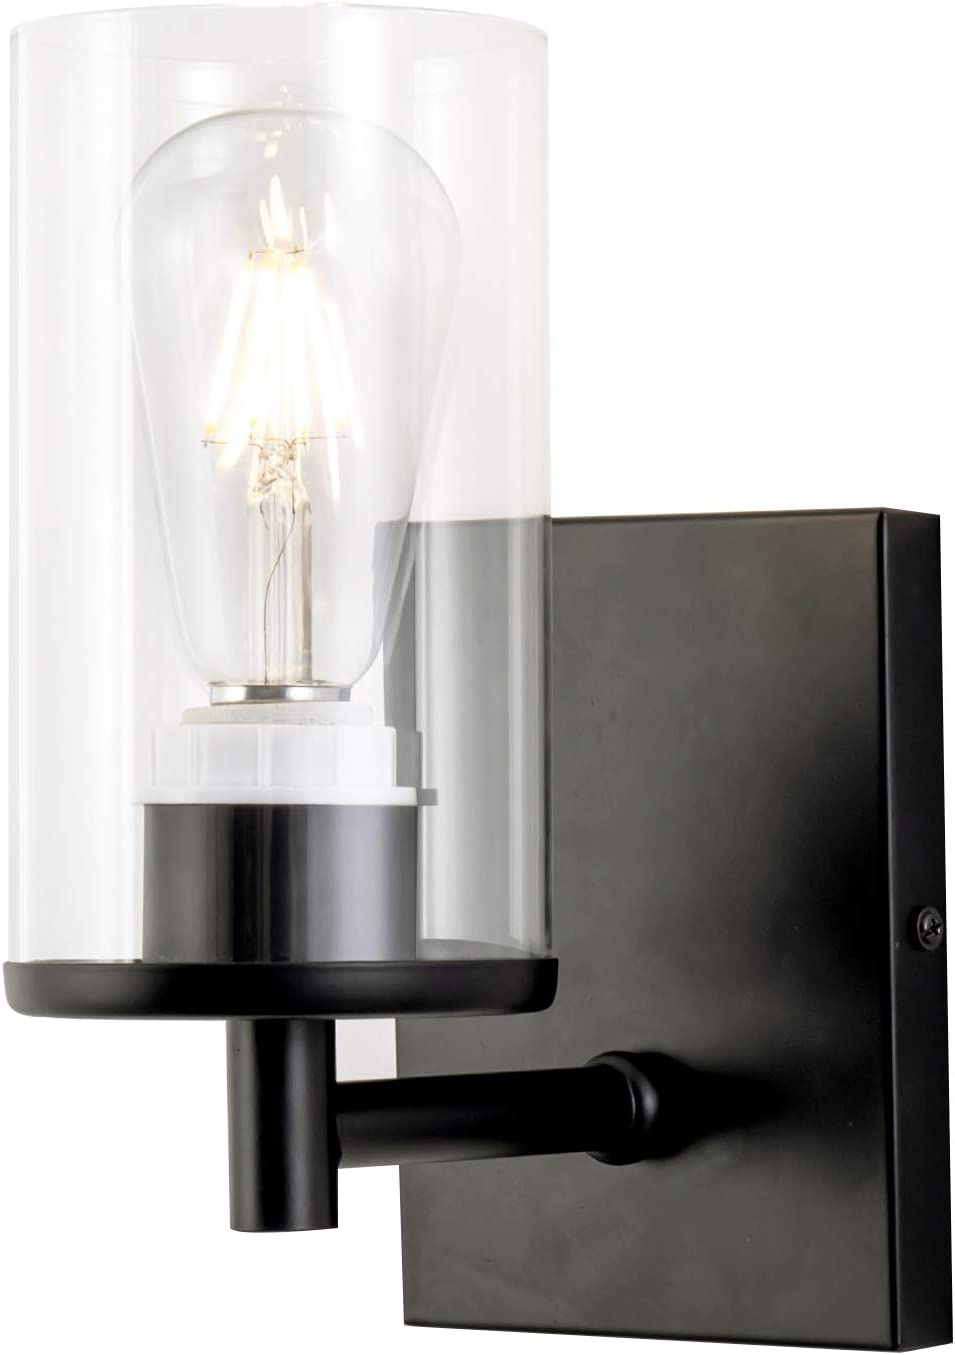 Passica Clear Glass Modern Wall Light Retro Vintage Sconce Wall Lamp Indoor Lvingroom